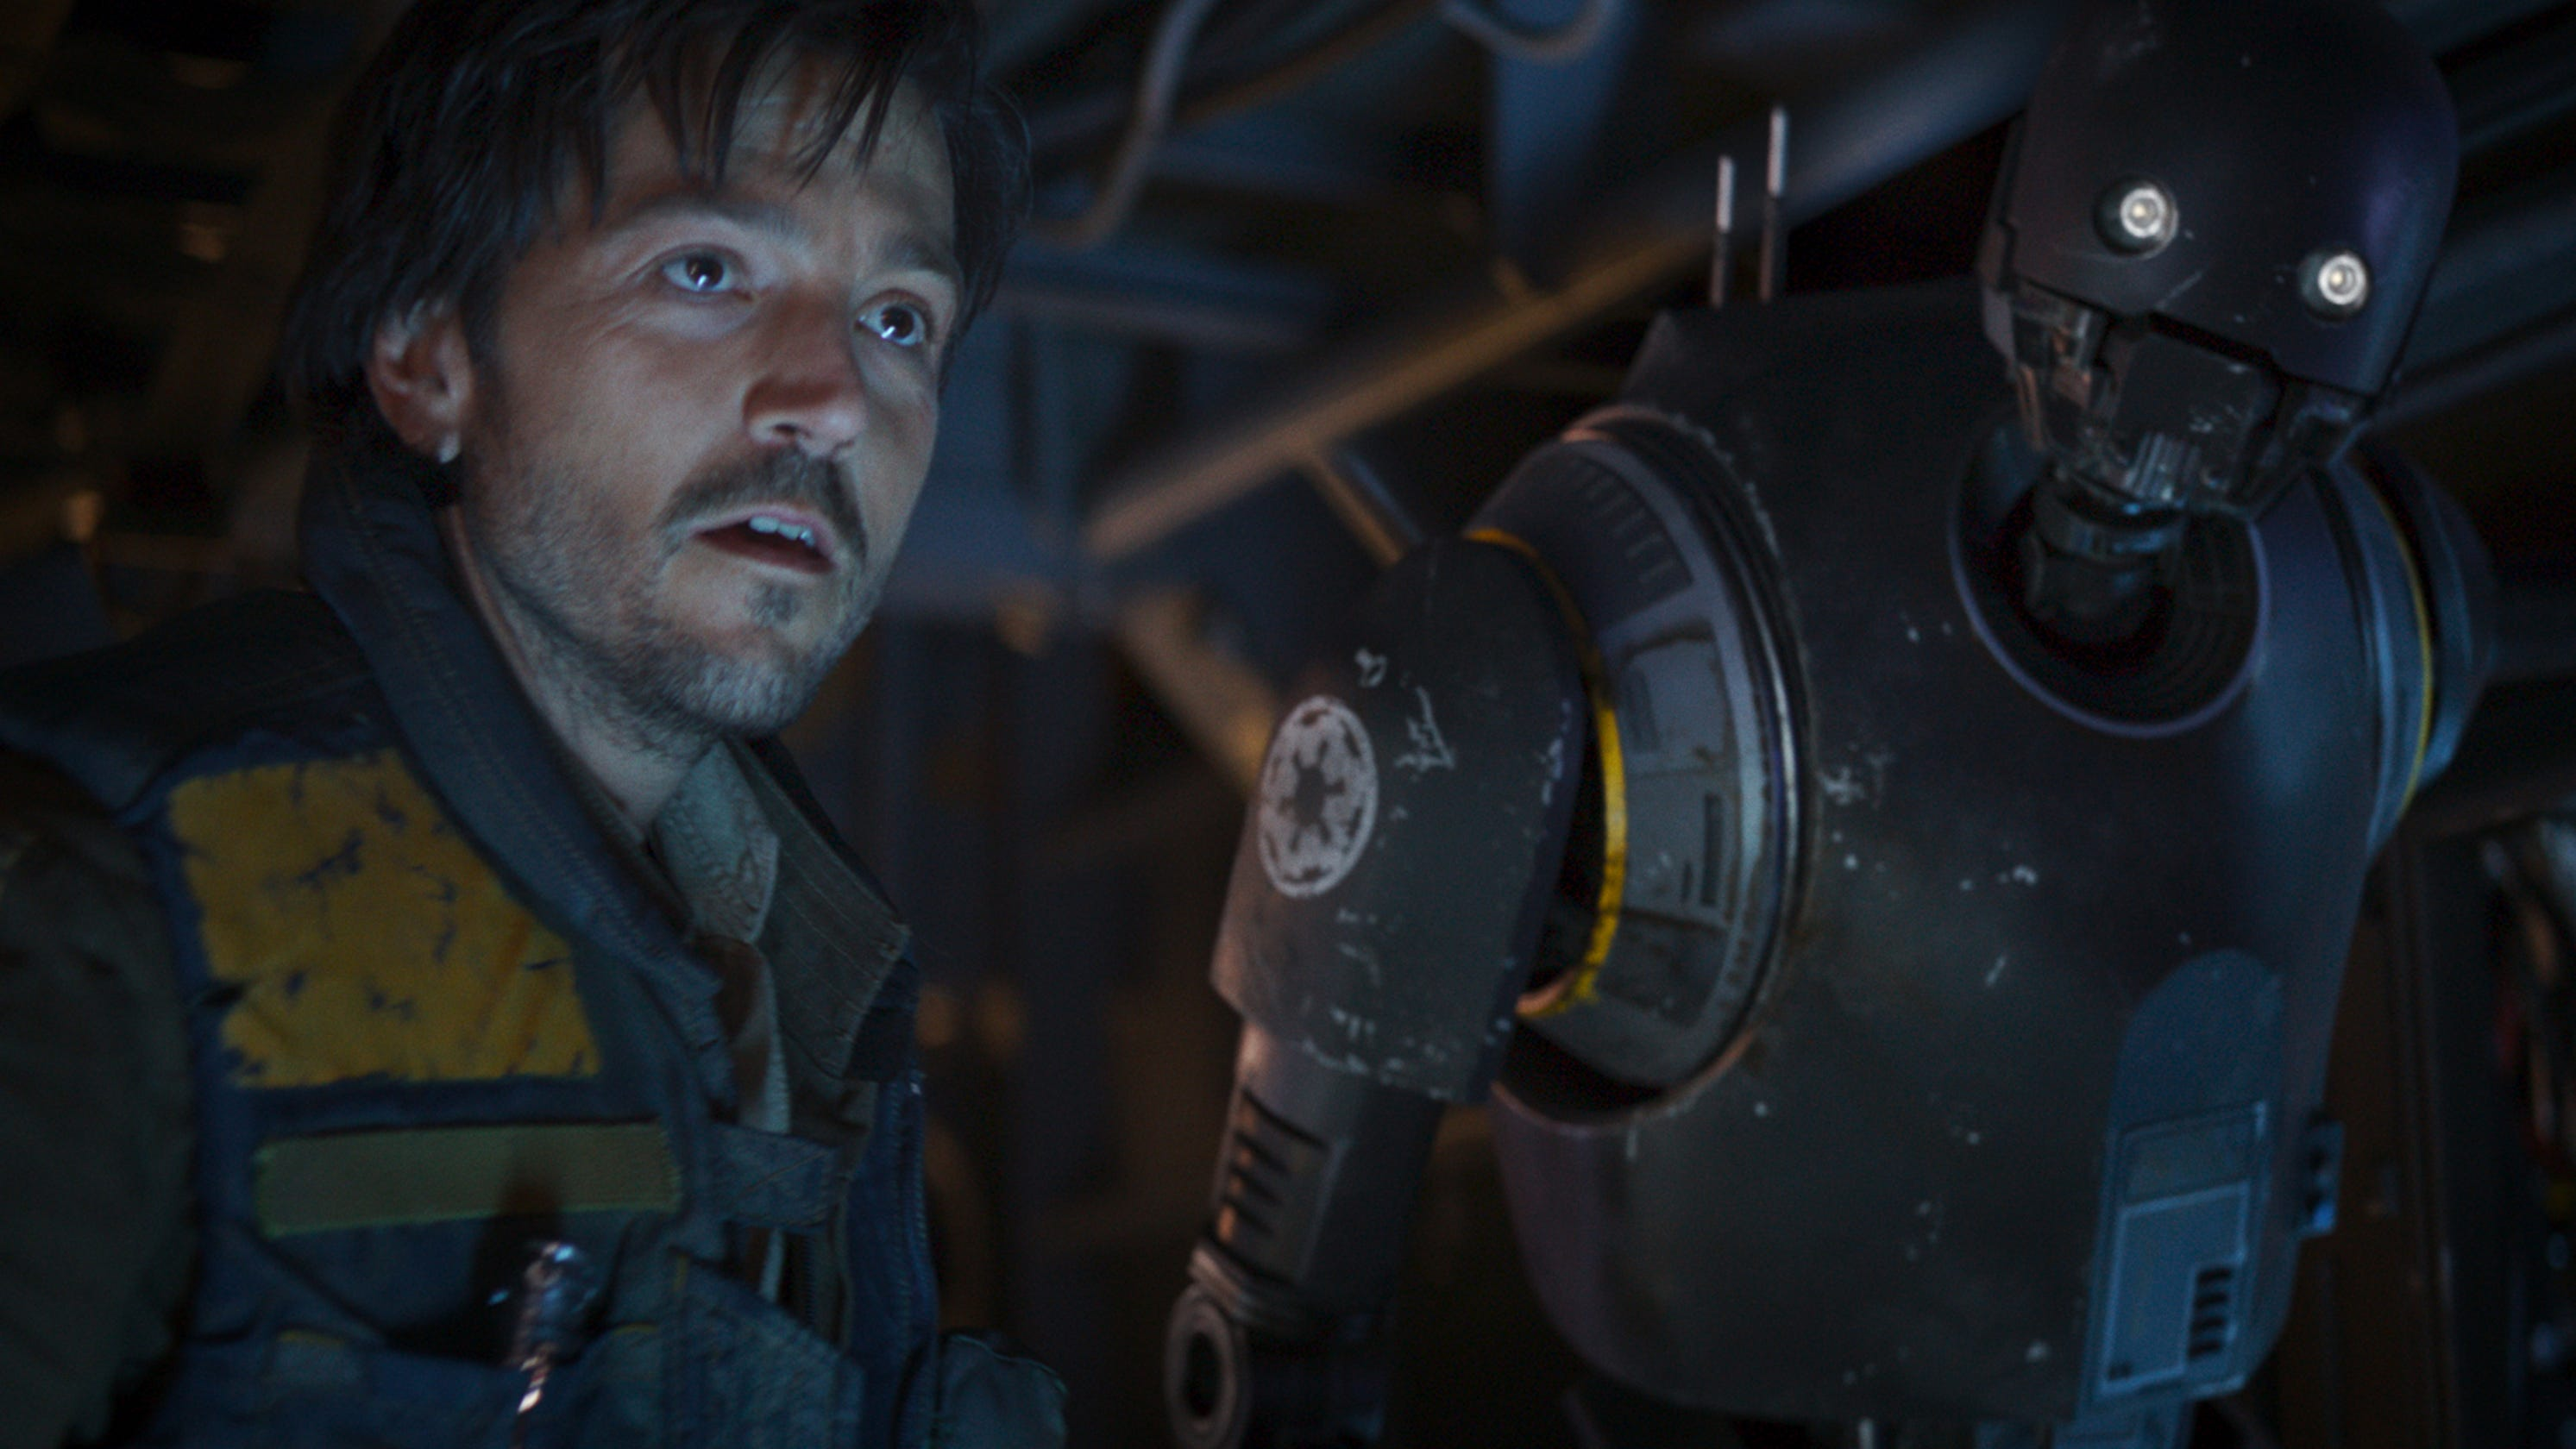 'Star Wars: Rogue One' spinoff series lands on Disney's new streaming service